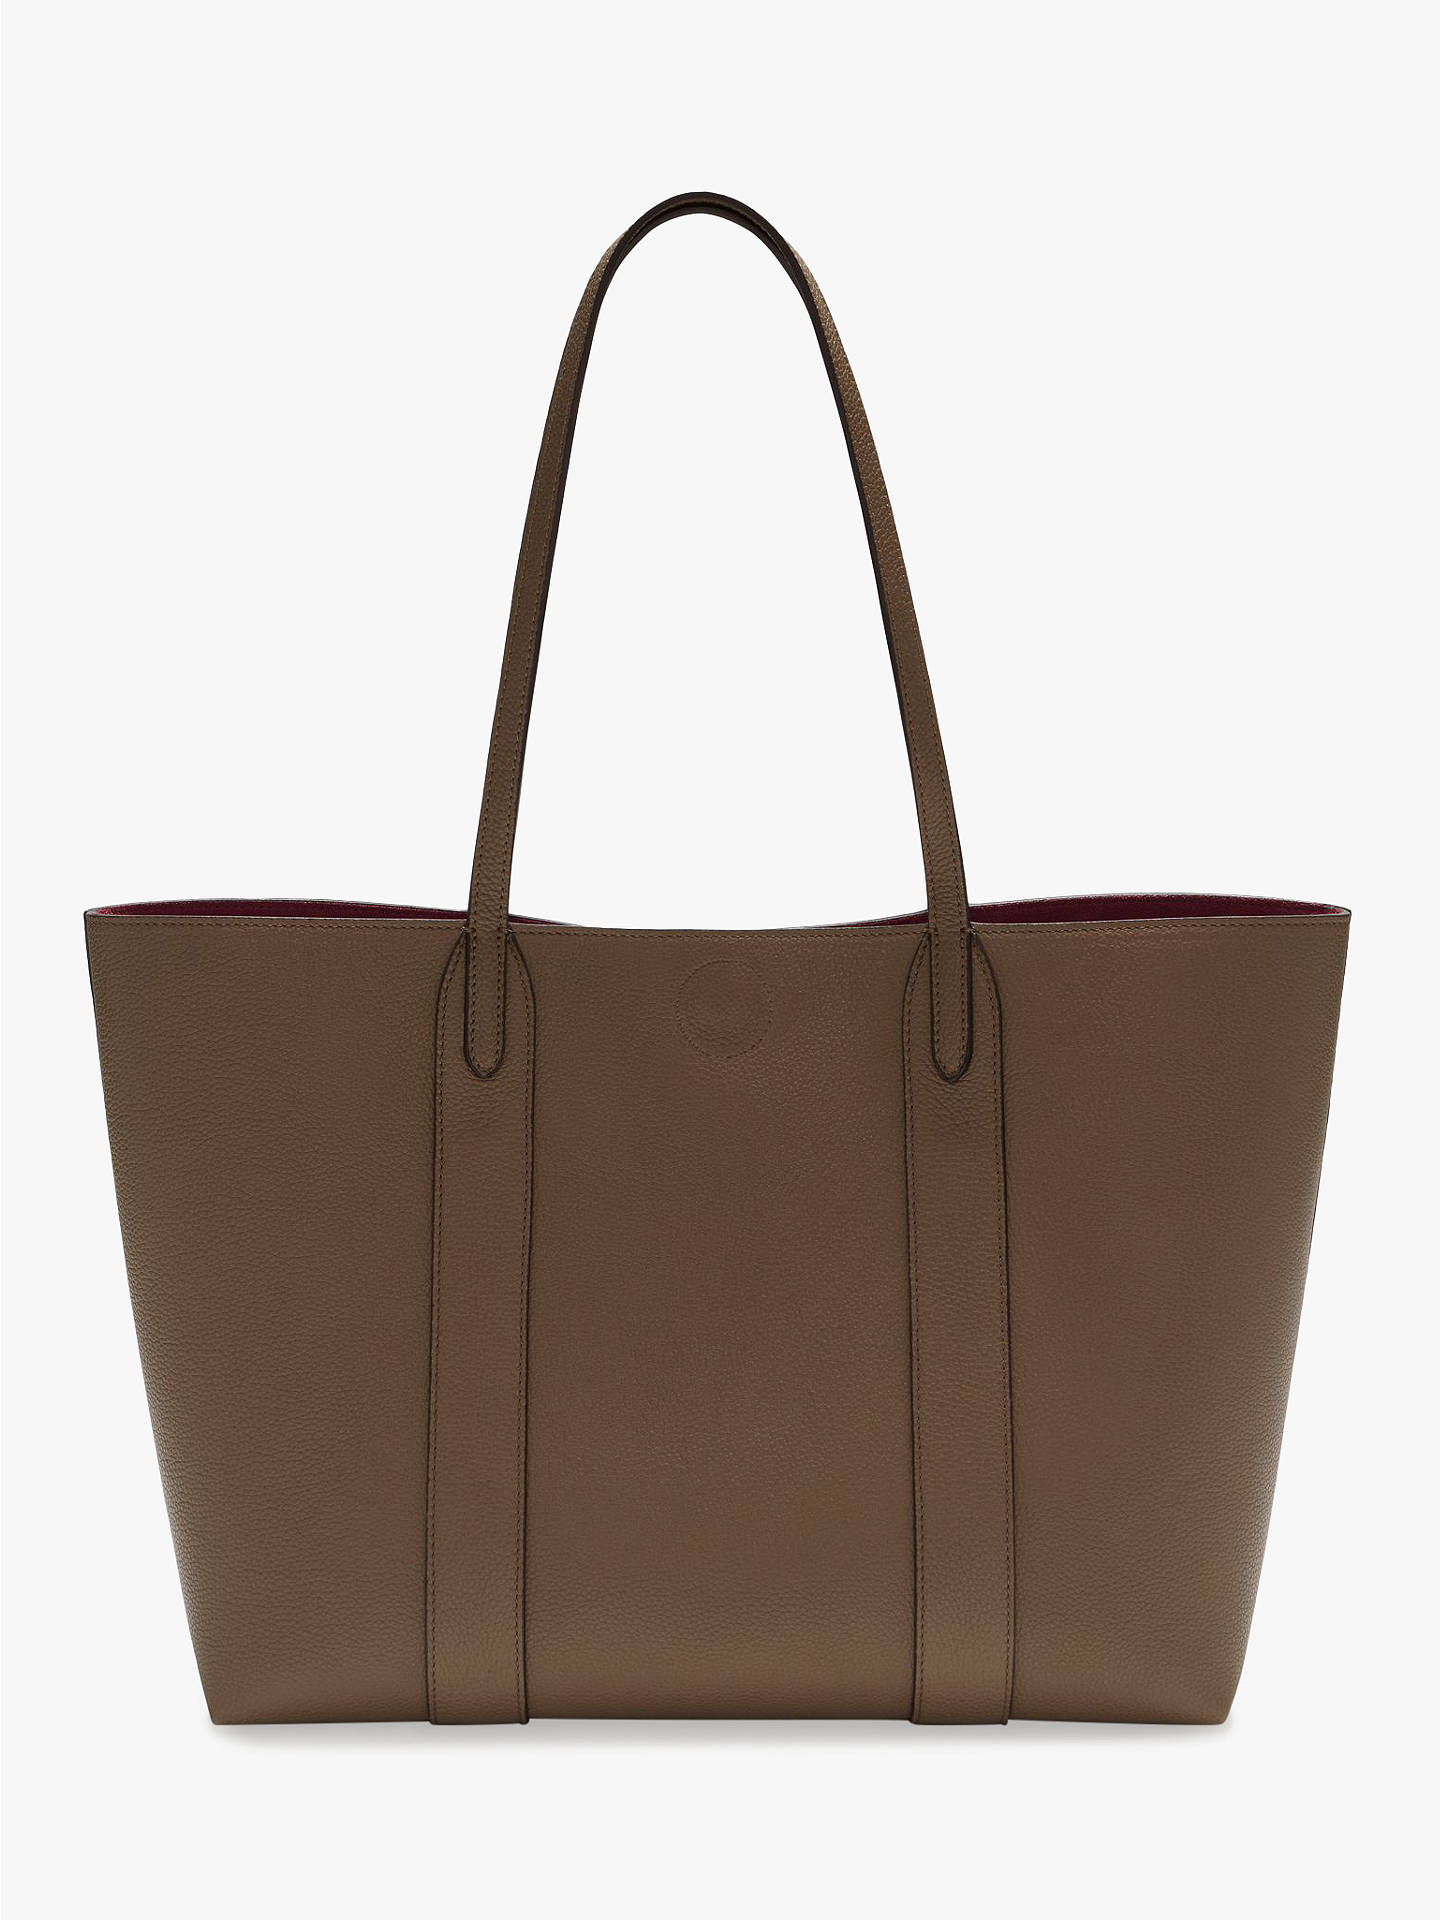 294122893a ... Buy Mulberry Bayswater Small Classic Grain Leather Tote Bag,  Clay/Oxblood Online at johnlewis ...